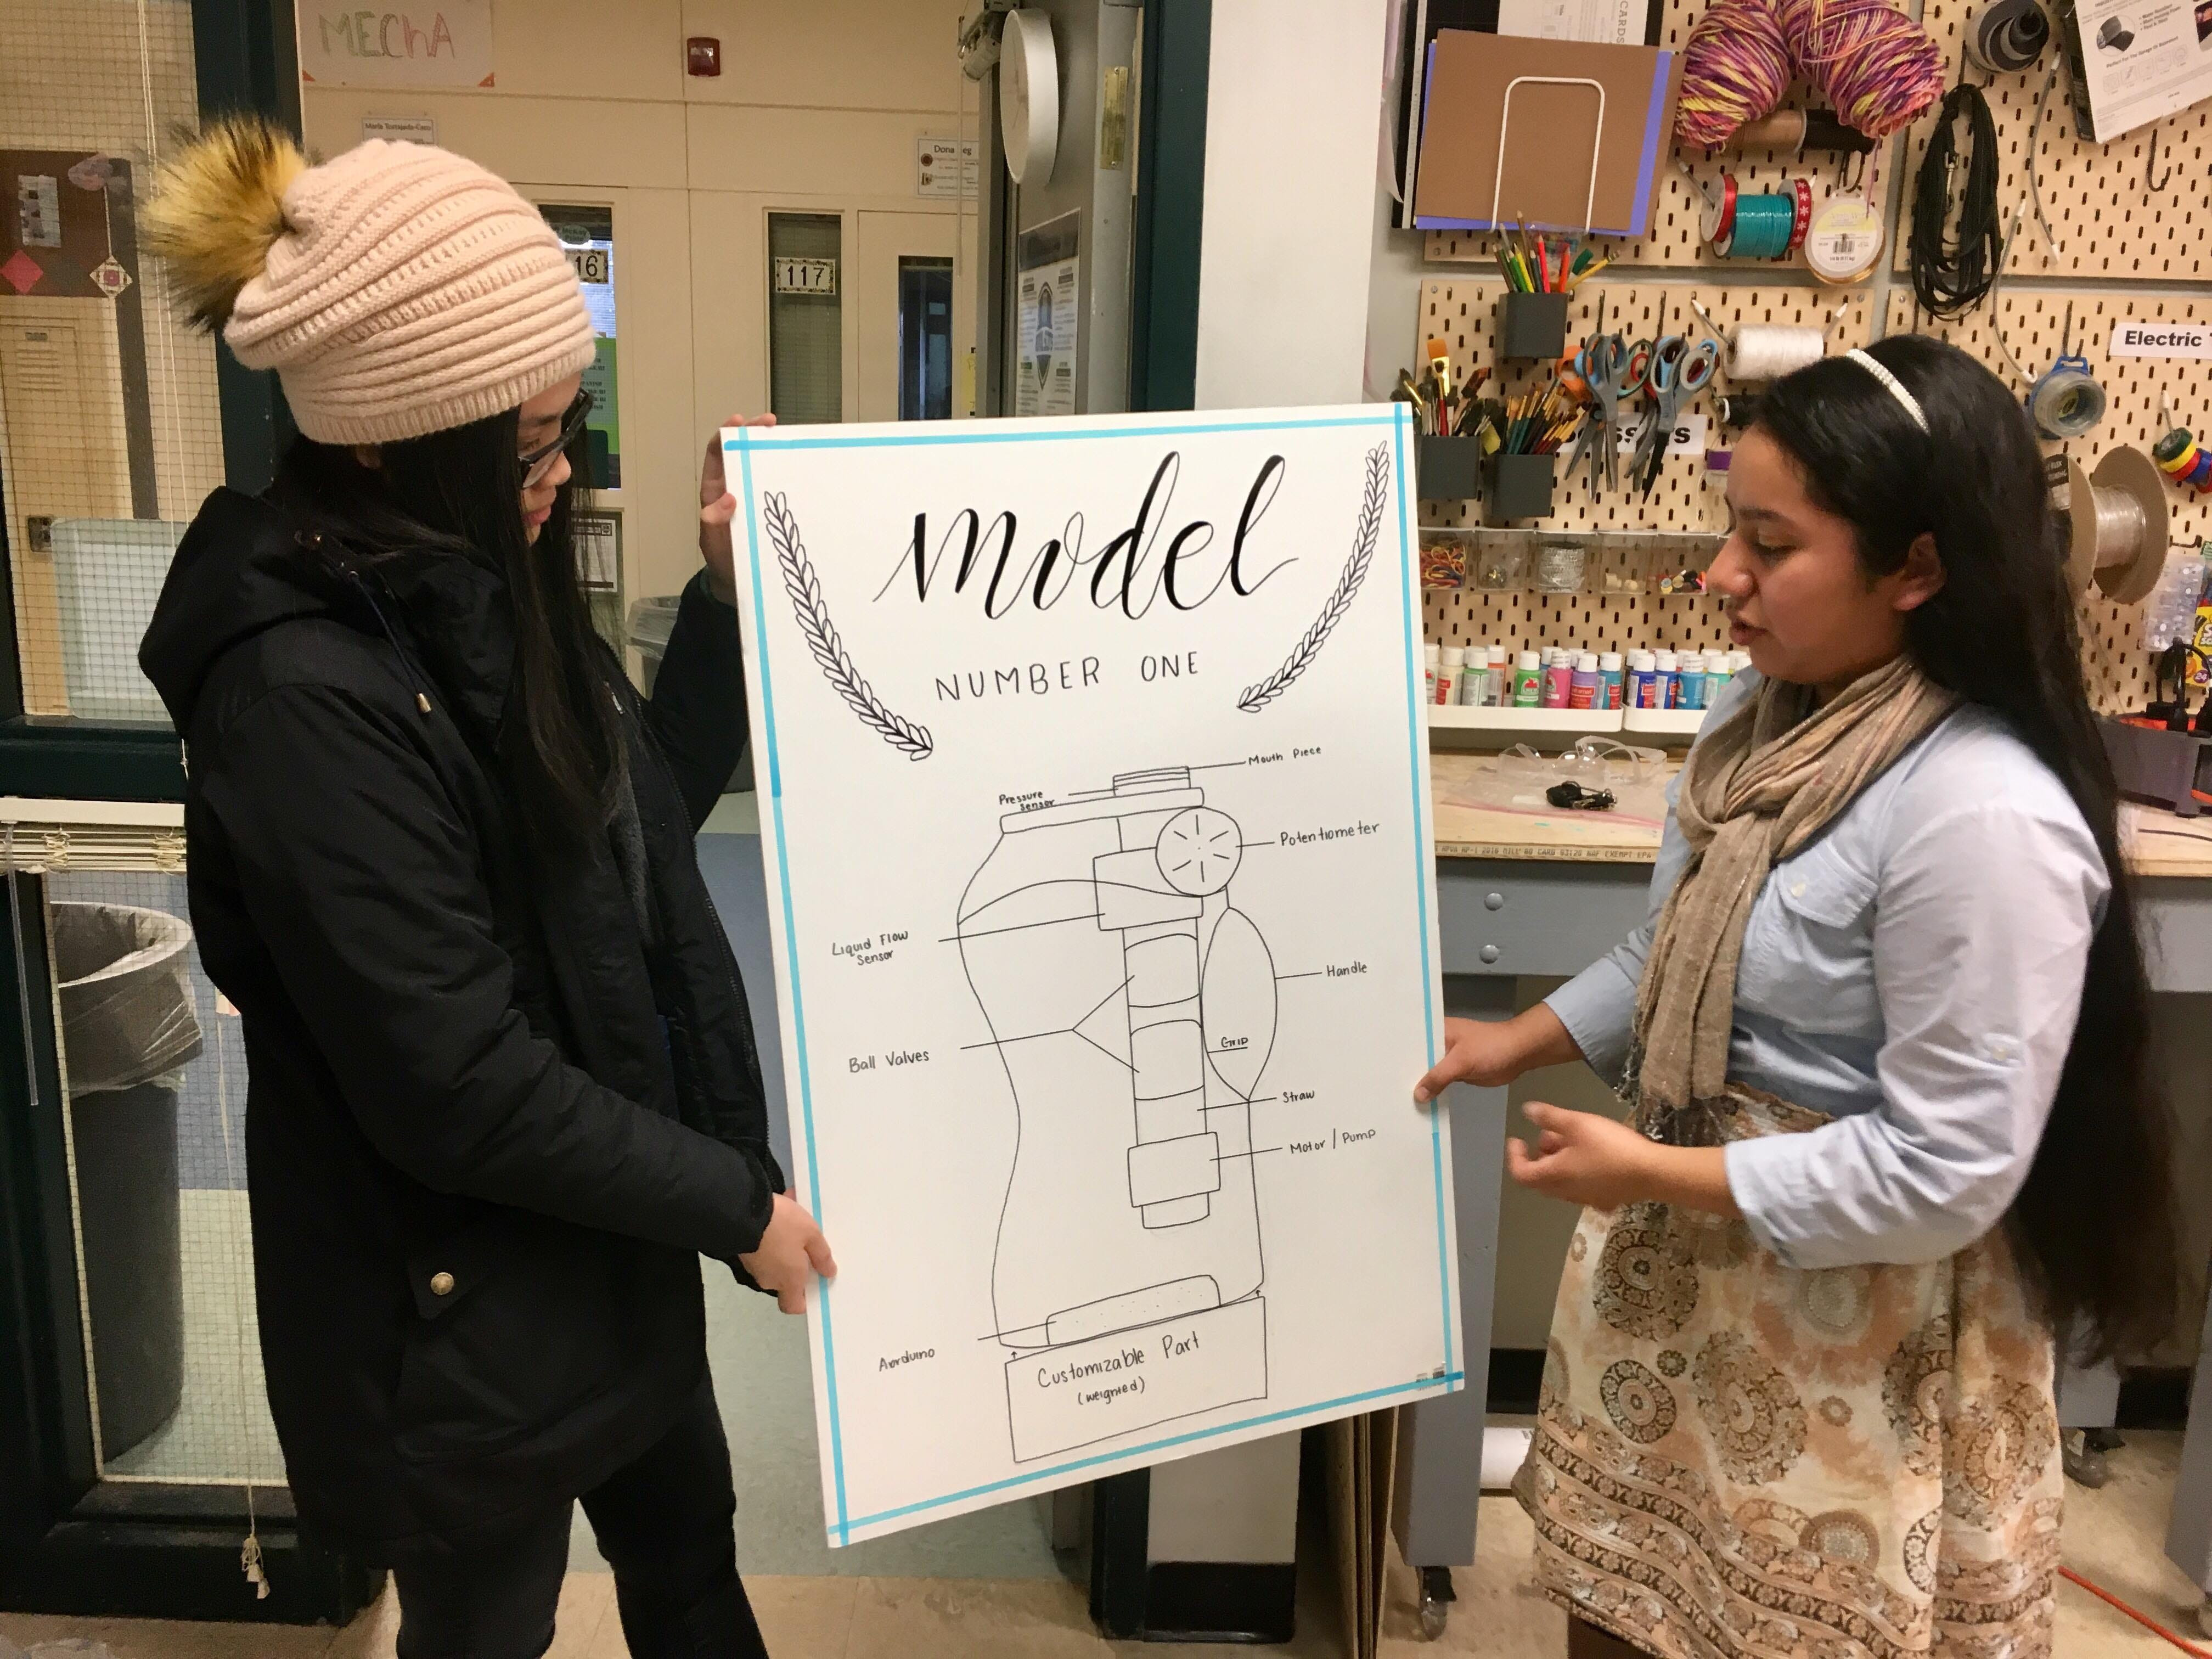 Chau Nguyen, left, and Lesly Rojas work on their presentation Feb. 28. 2019. The two sophomores are part of a team of McKay High School students designing an adaptive cup to help adults with dysphagia as part of the Lemelson-MIT InvenTeams Grant for Invention Projects.